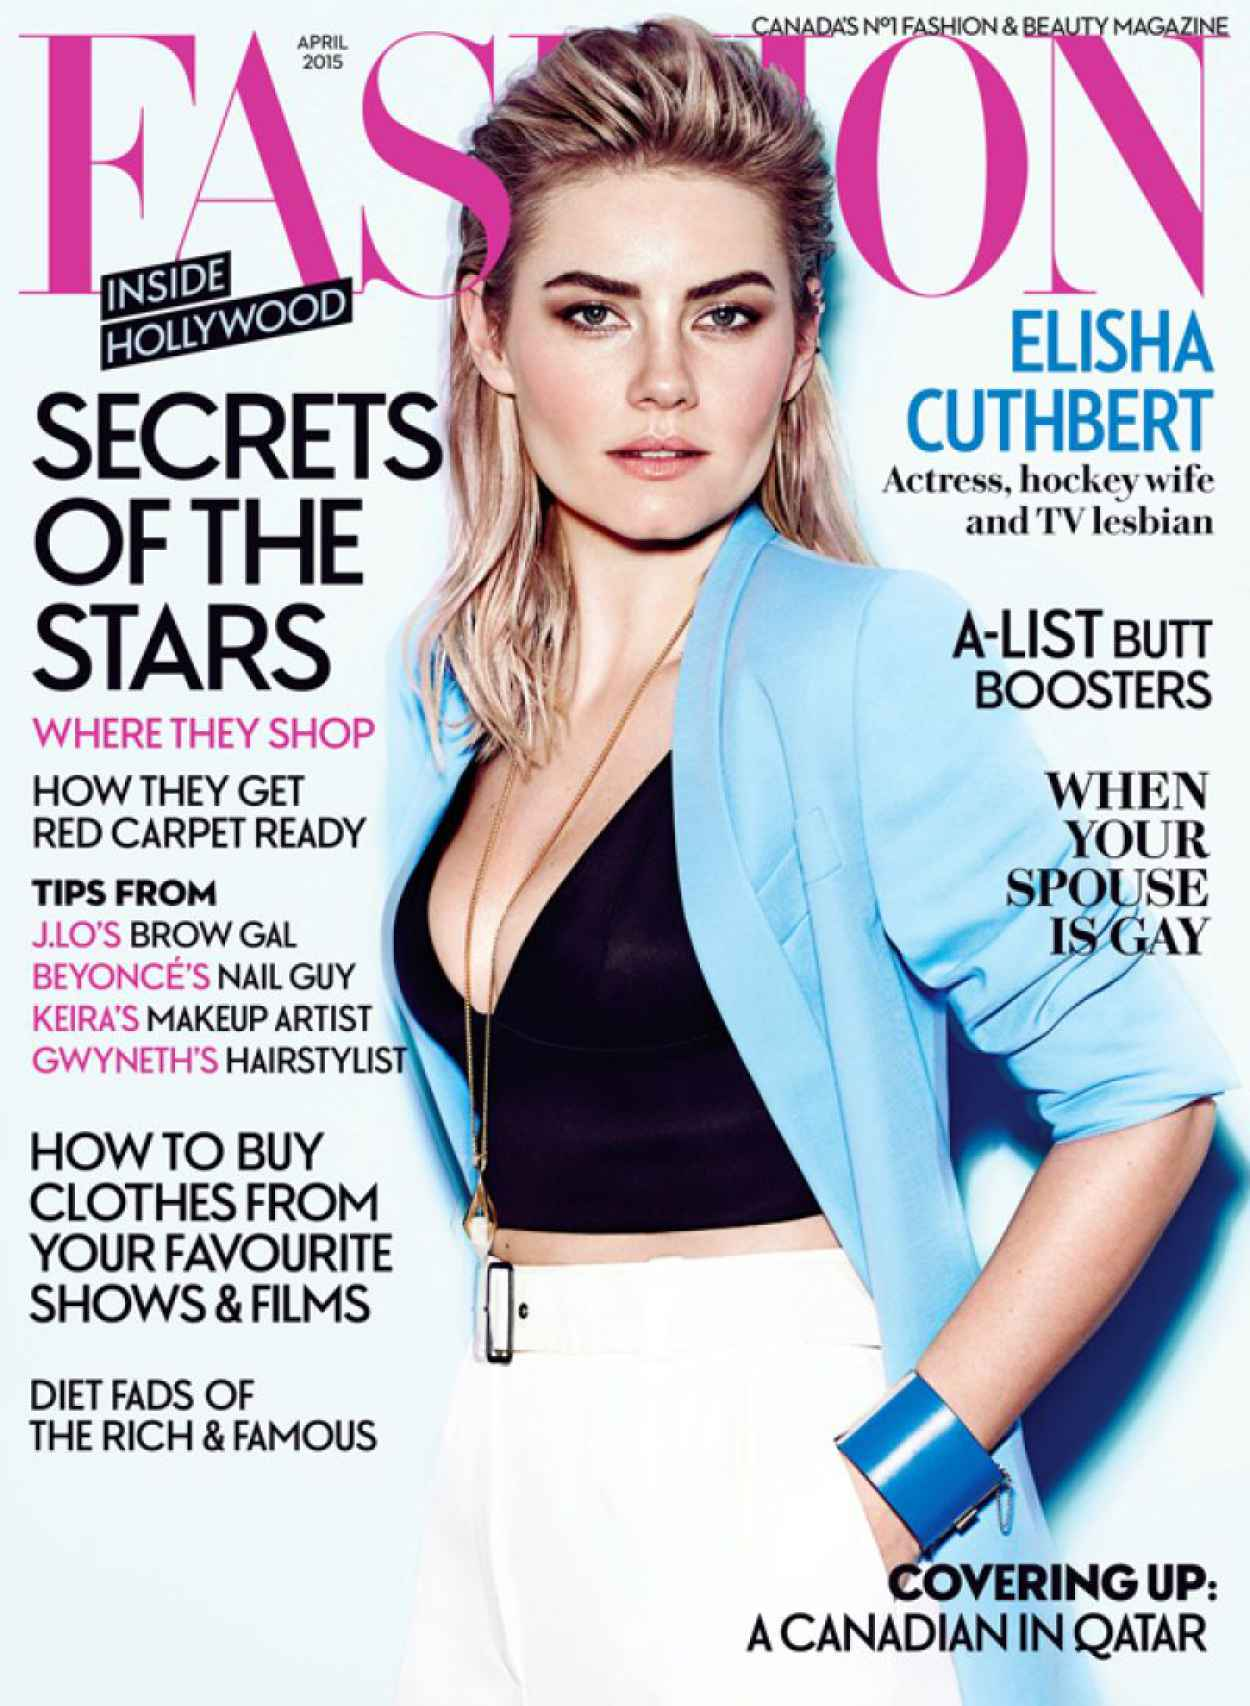 Elisha Cuthbert - Fashion Magazine April 2015 Cover and Photo-2